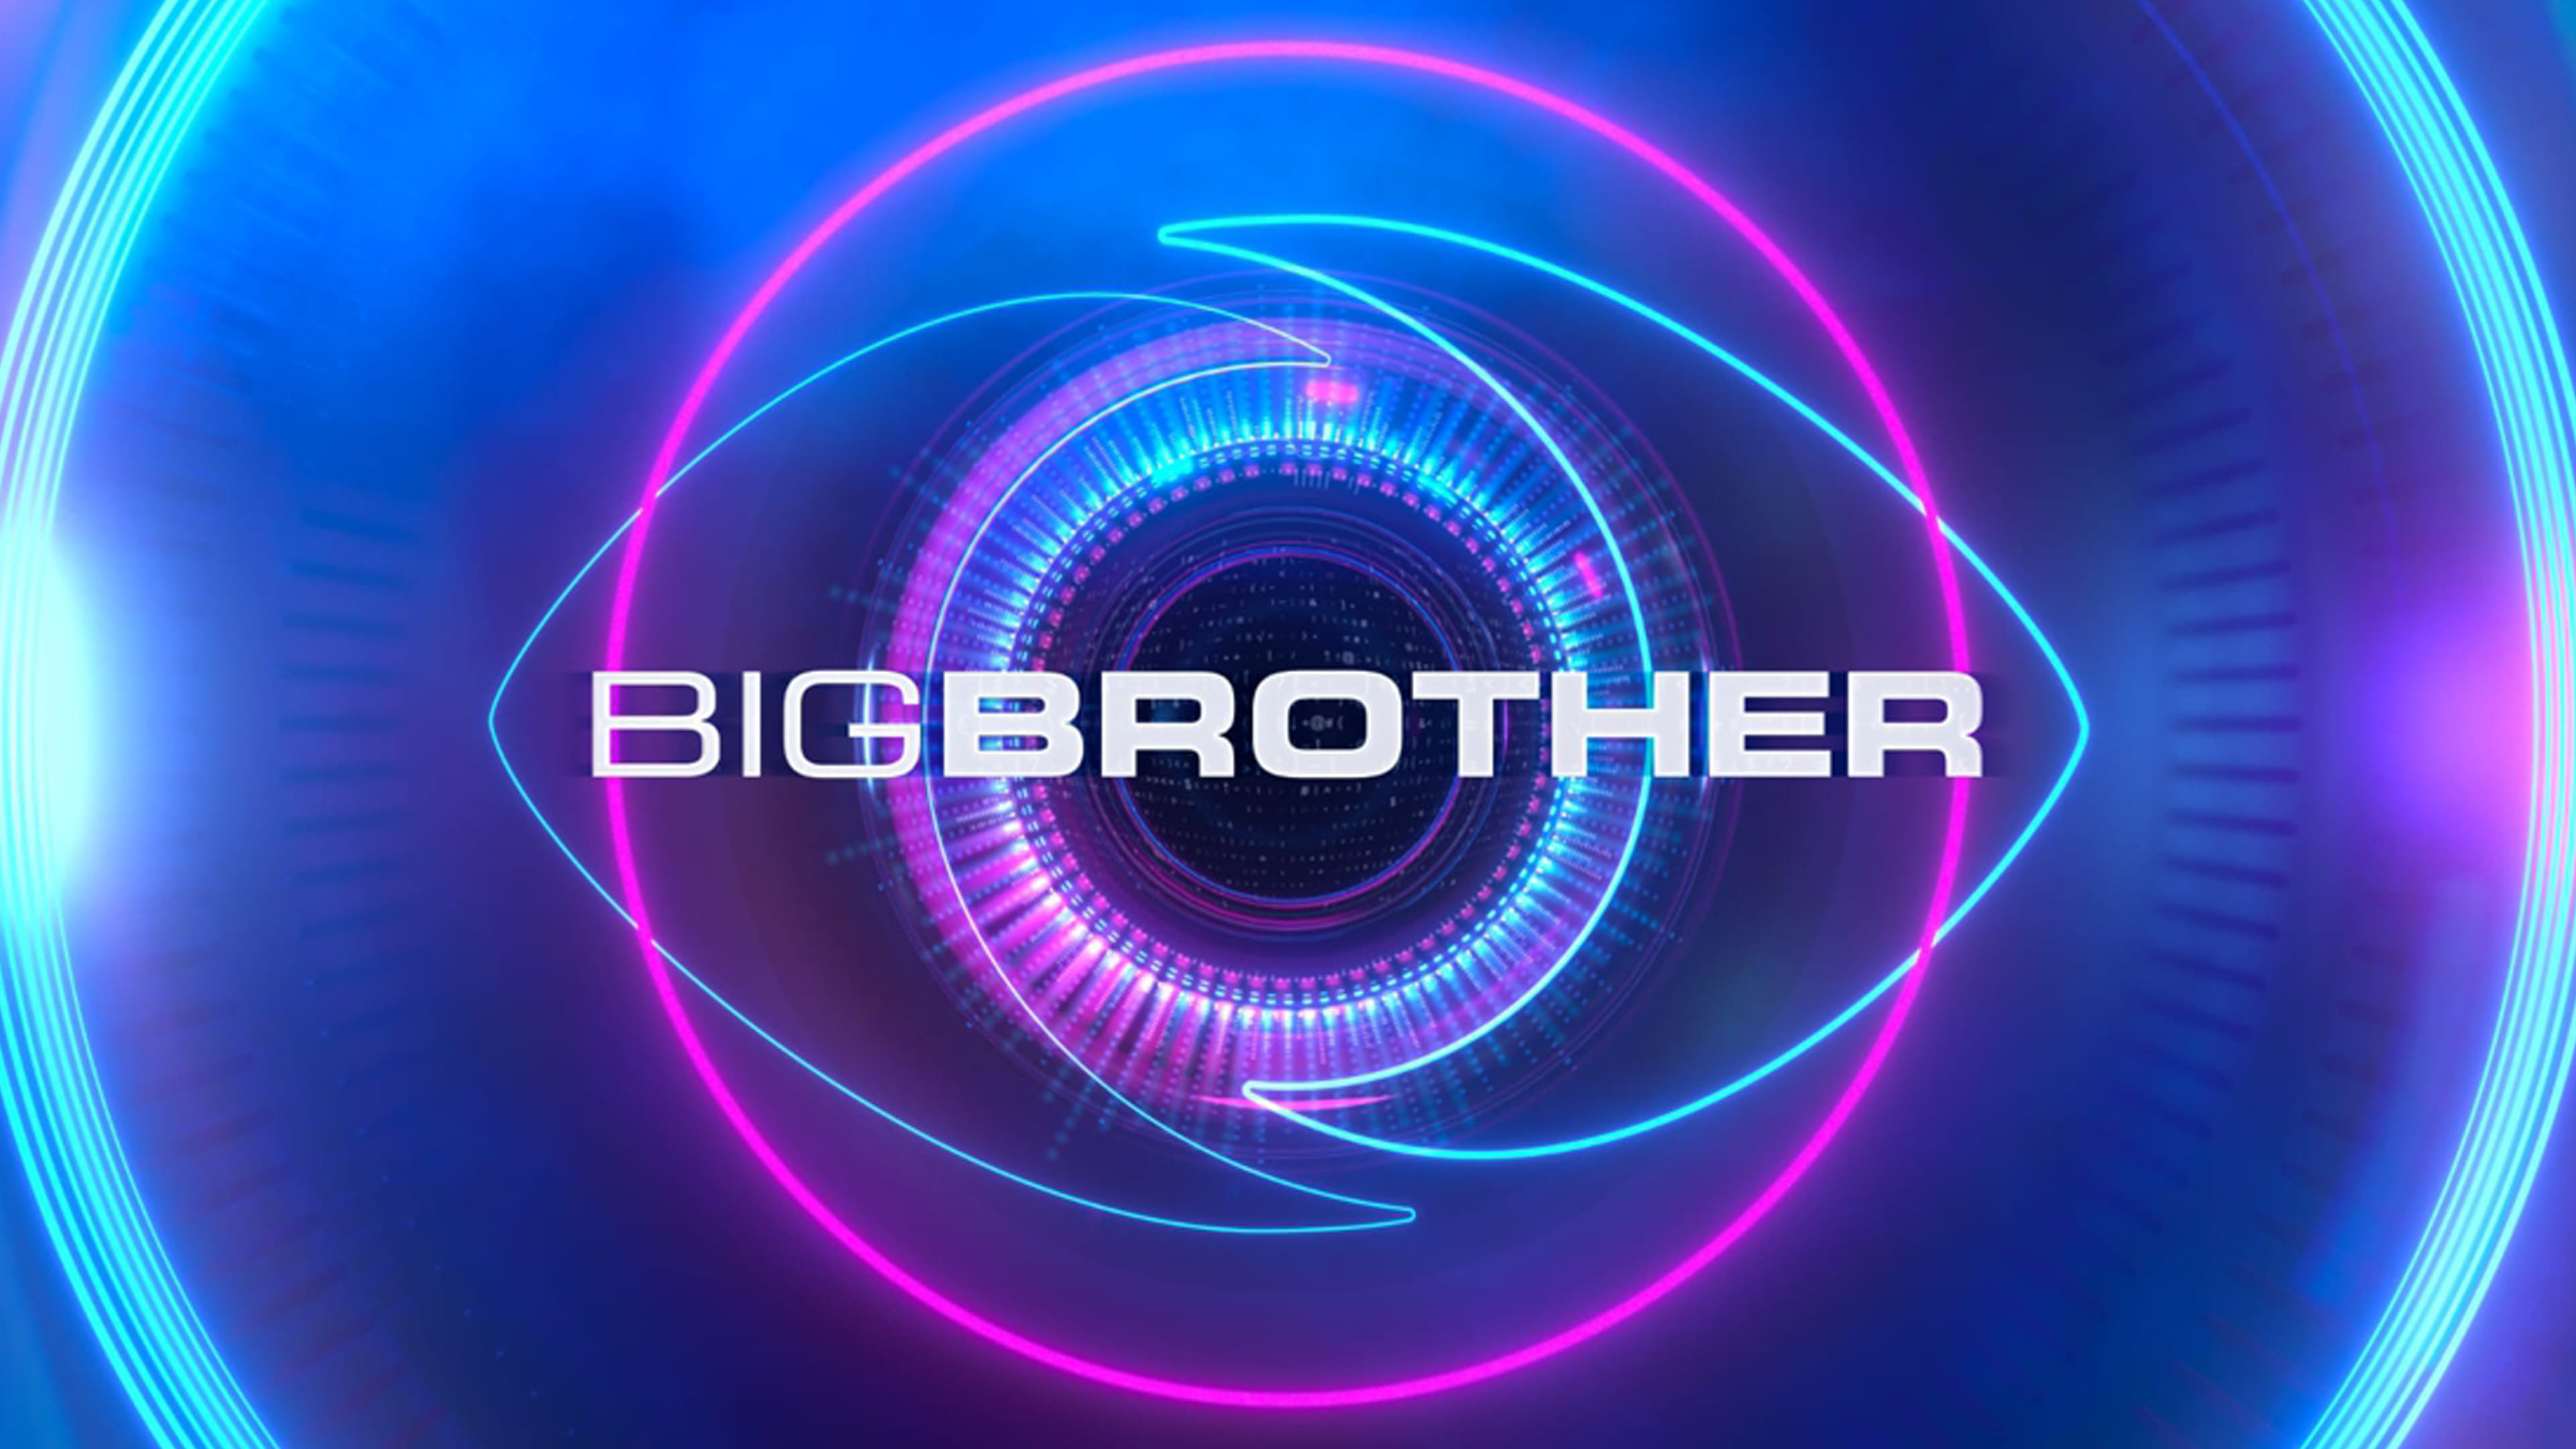 Big Brother (BE/NL)